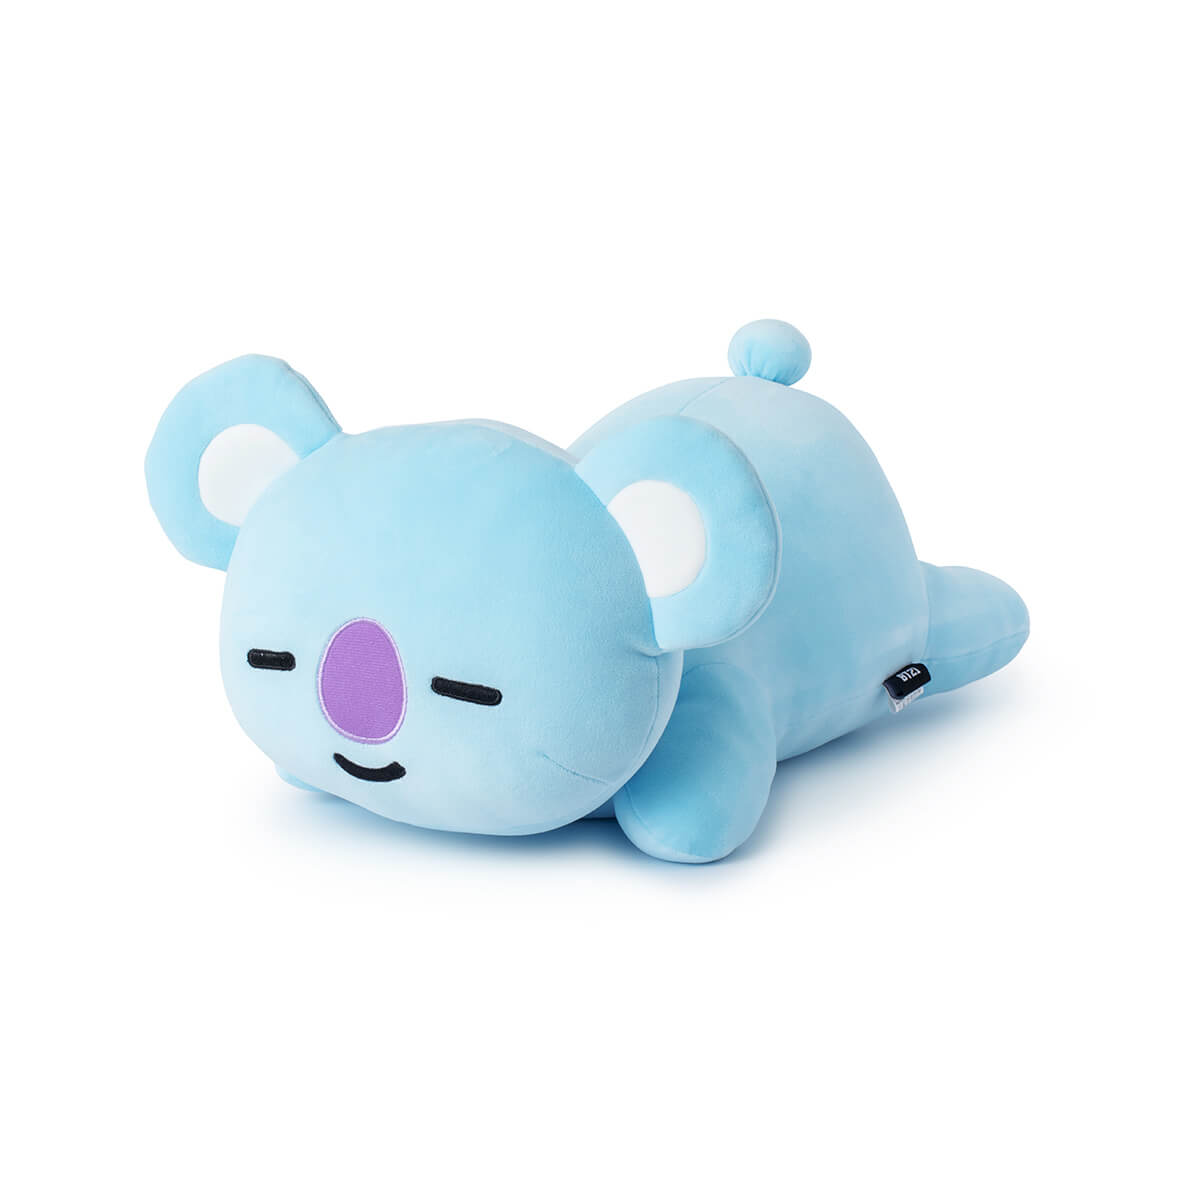 BT21 KOYA Lying Pillow Cushion 19.7""